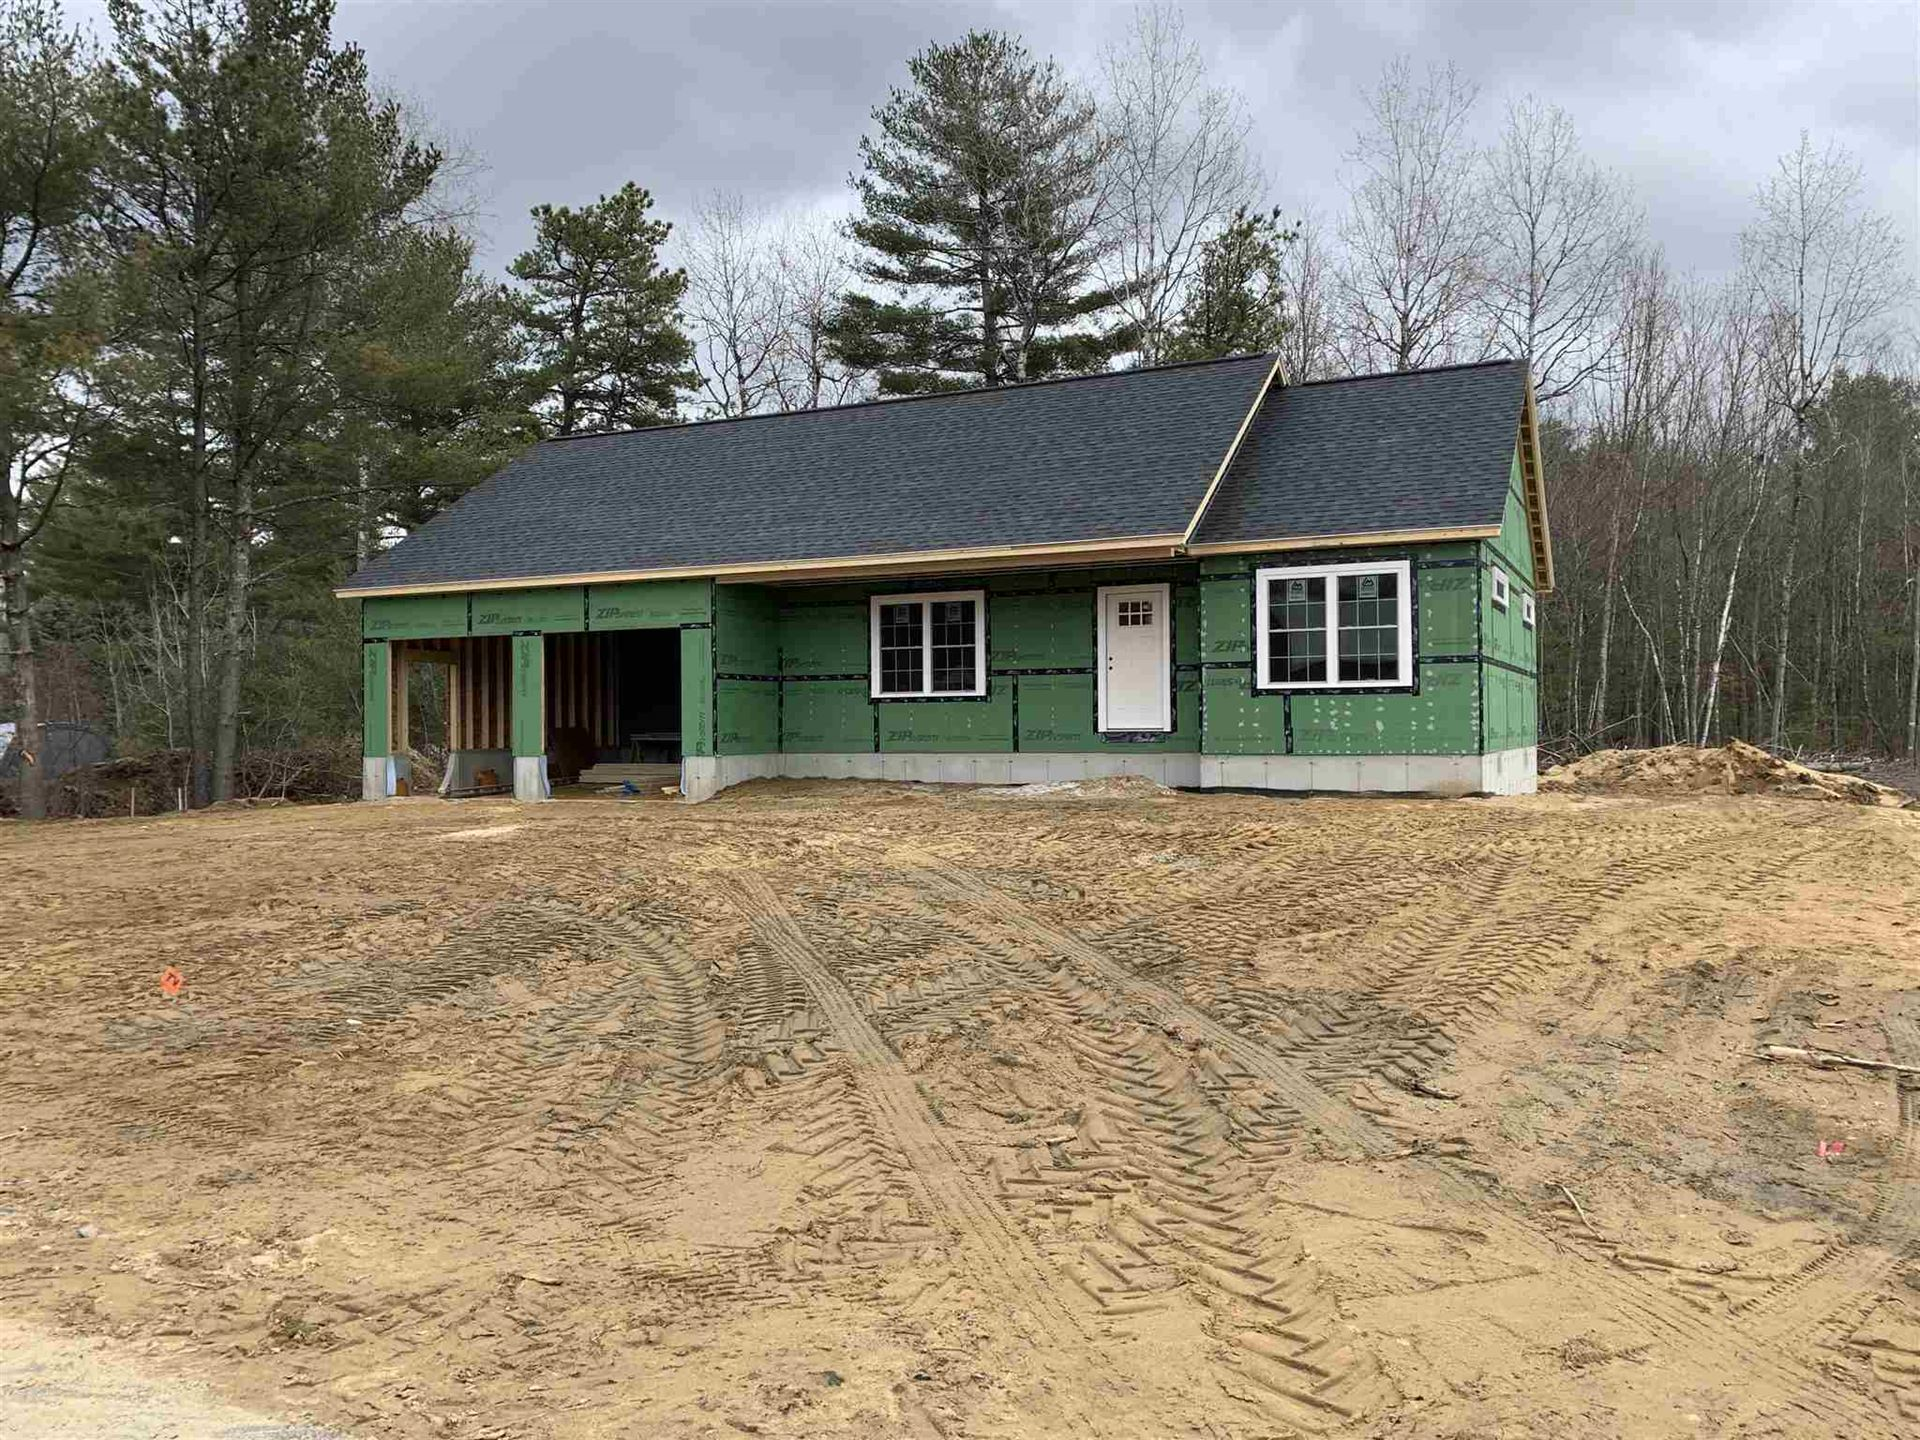 18 Whippoorwill Way #27, Somersworth, NH 03878 - MLS#: 4780080